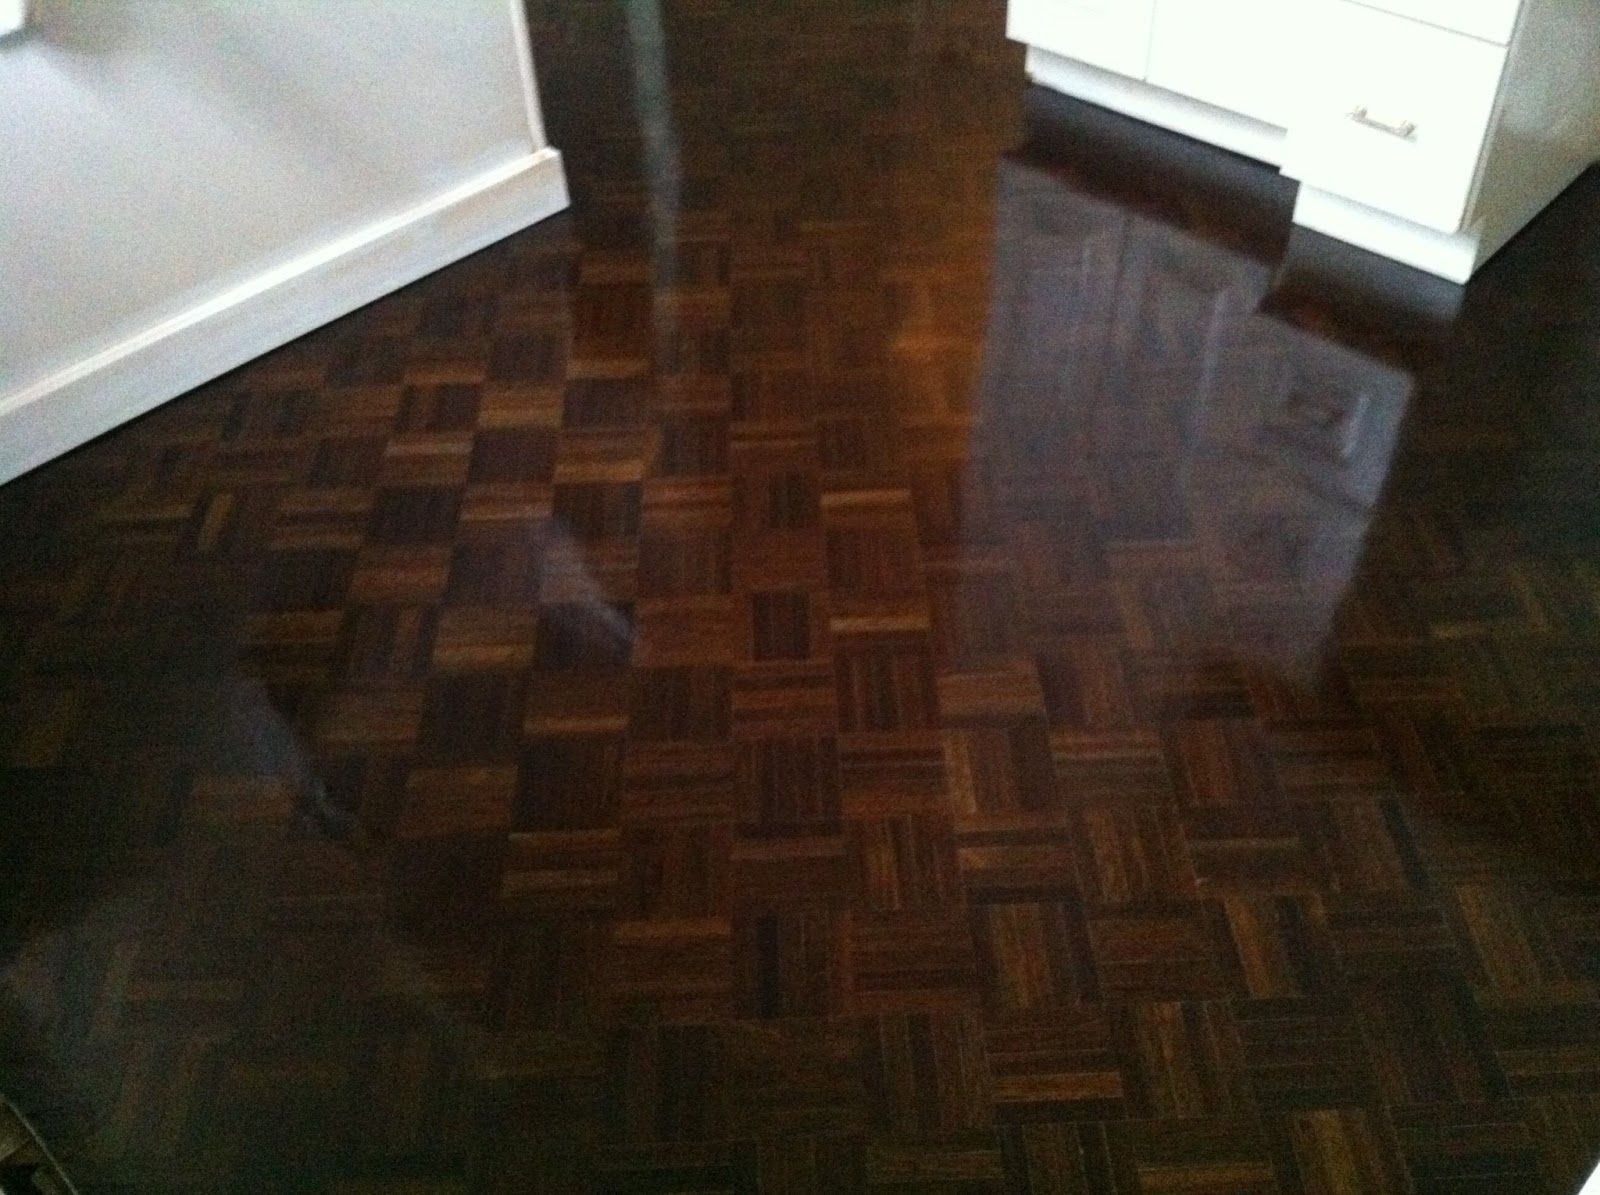 The Luxe Lifestyle January 2017 Refinished Parquet Floors